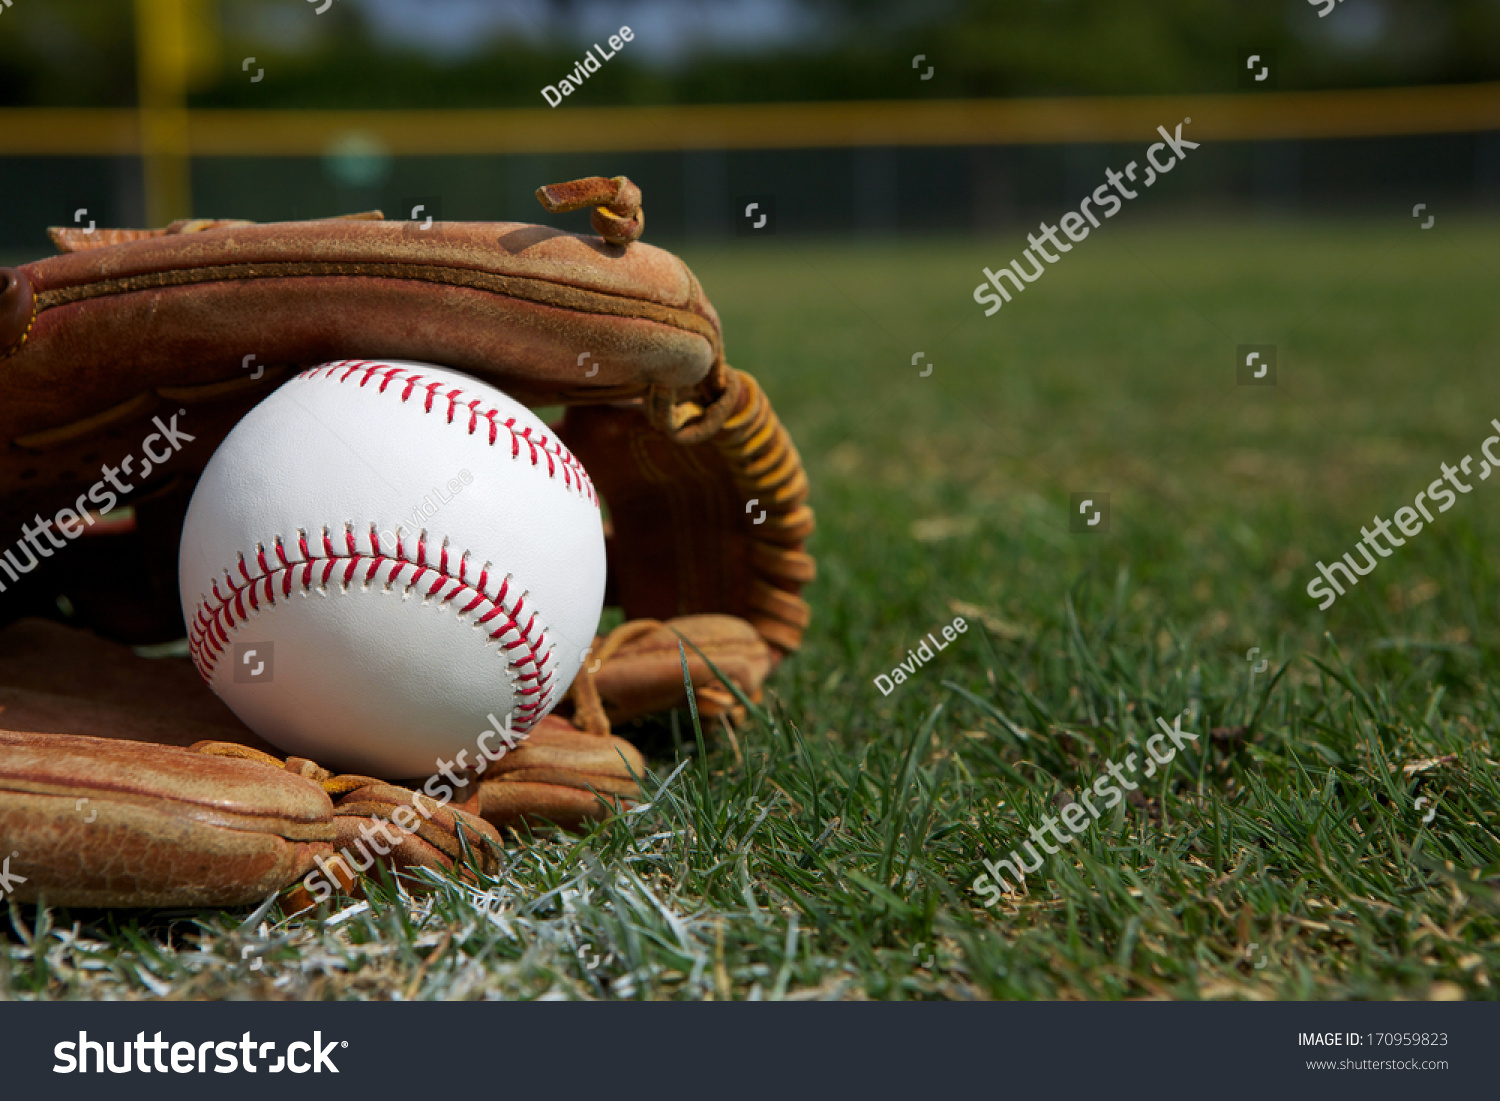 New Baseball in a Glove in the Outfield #170959823